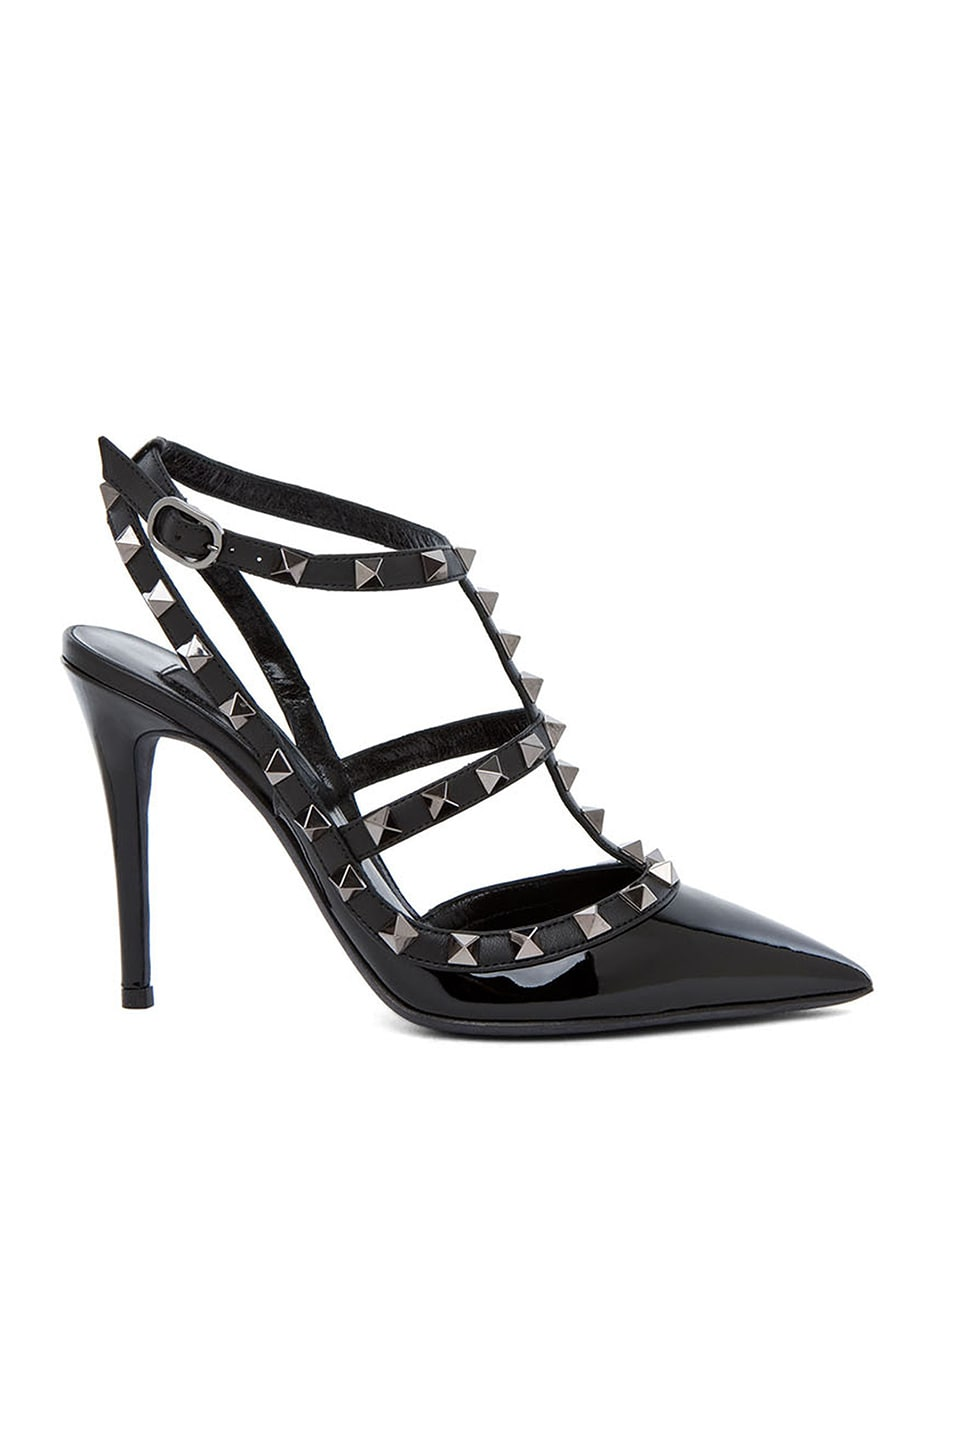 Image 1 of Valentino Rockstud Patent Slingbacks T.100 in Black